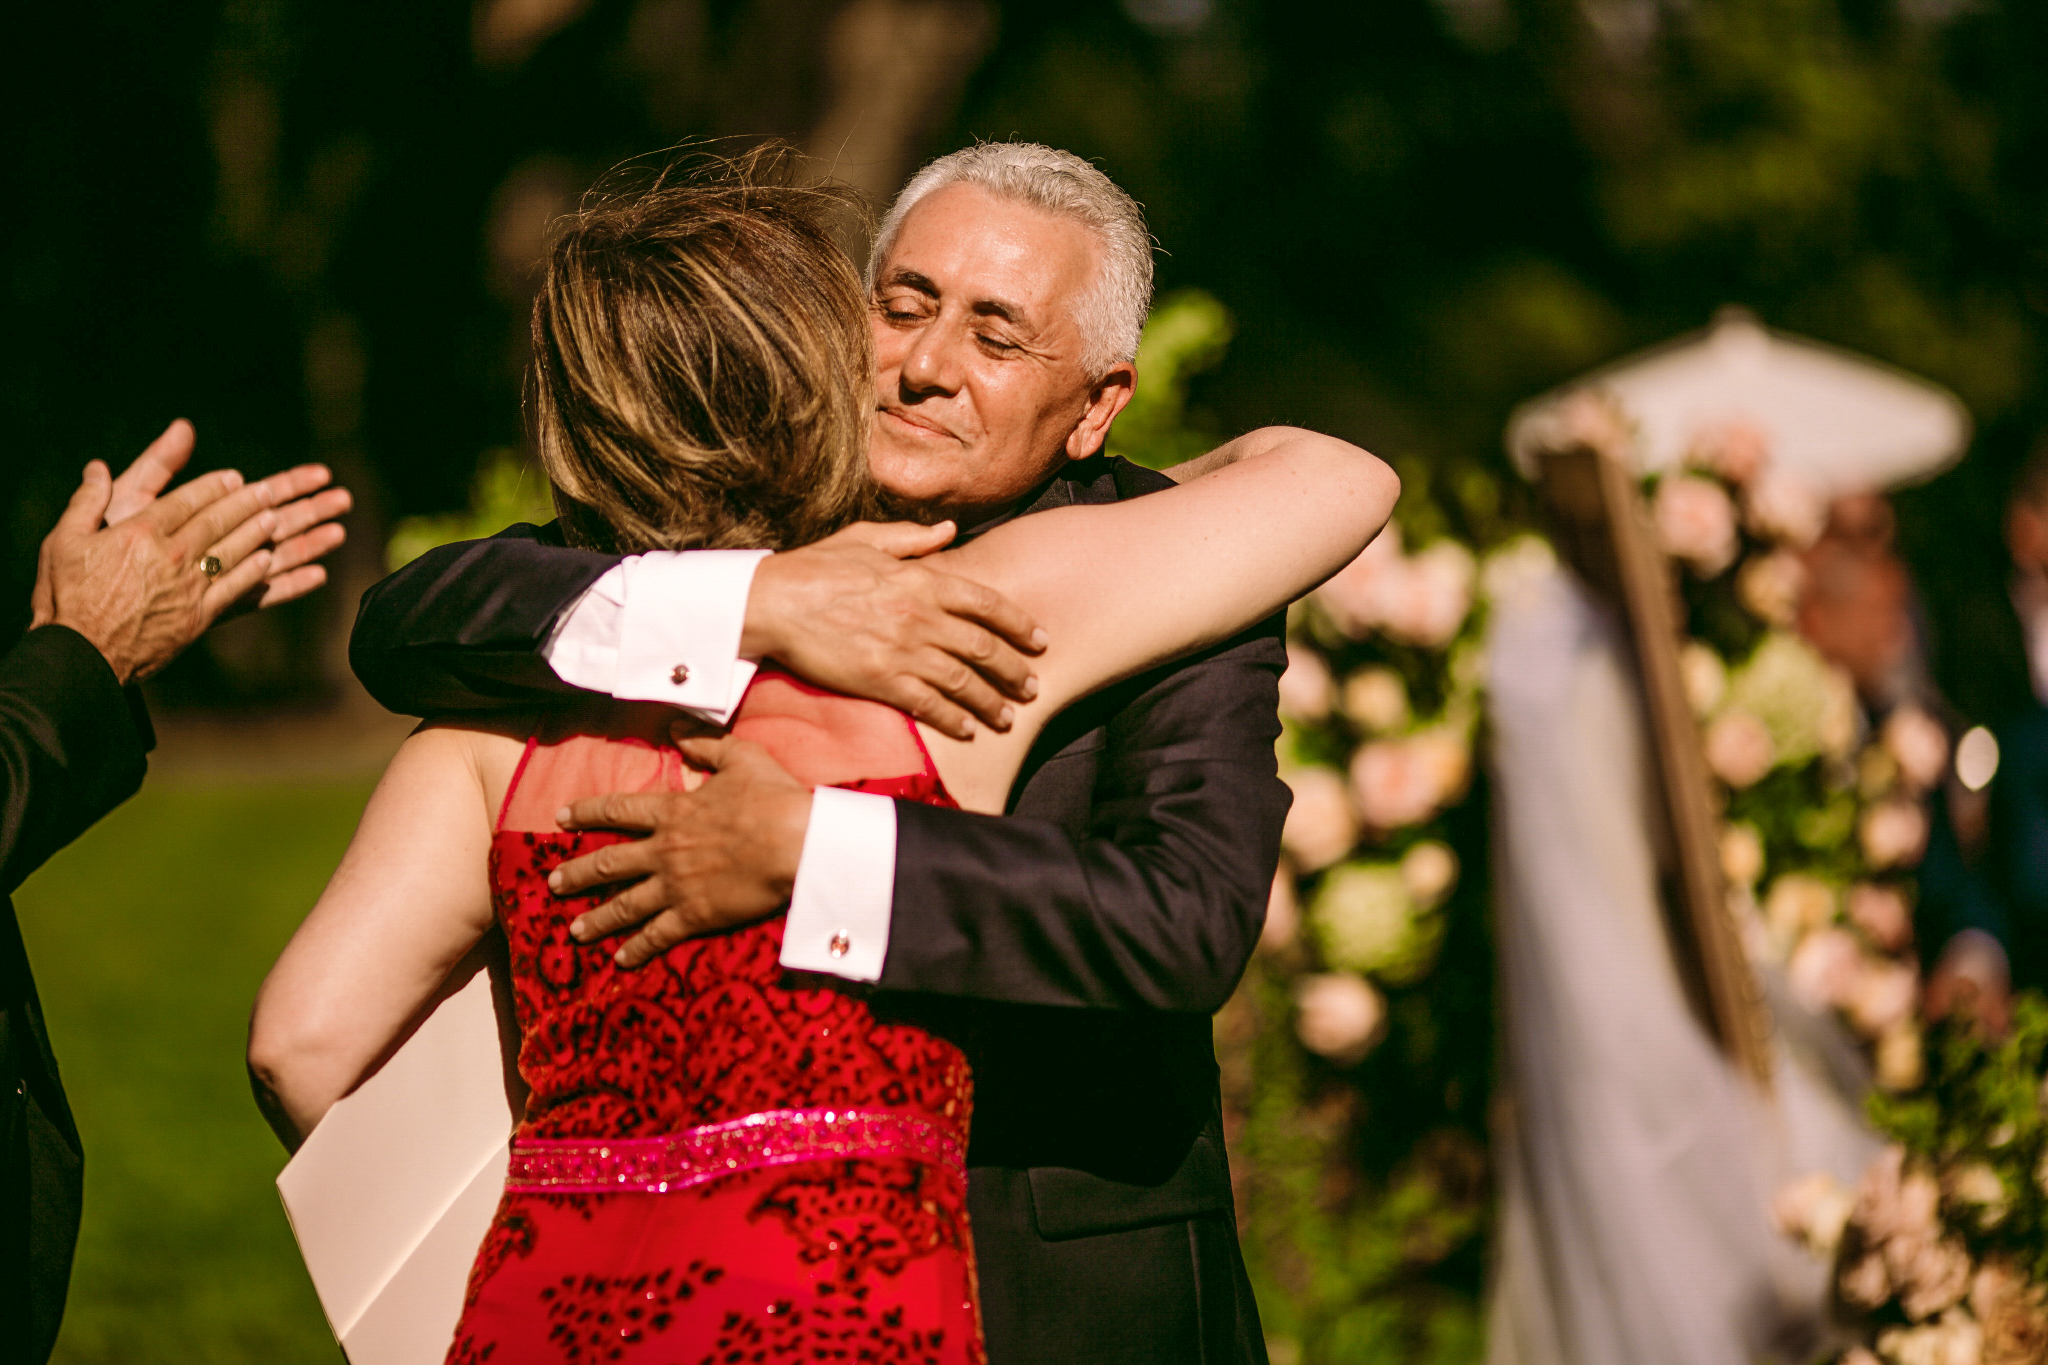 san diego wedding   photographer | woman in red ress faced against camera hugging man in   suit